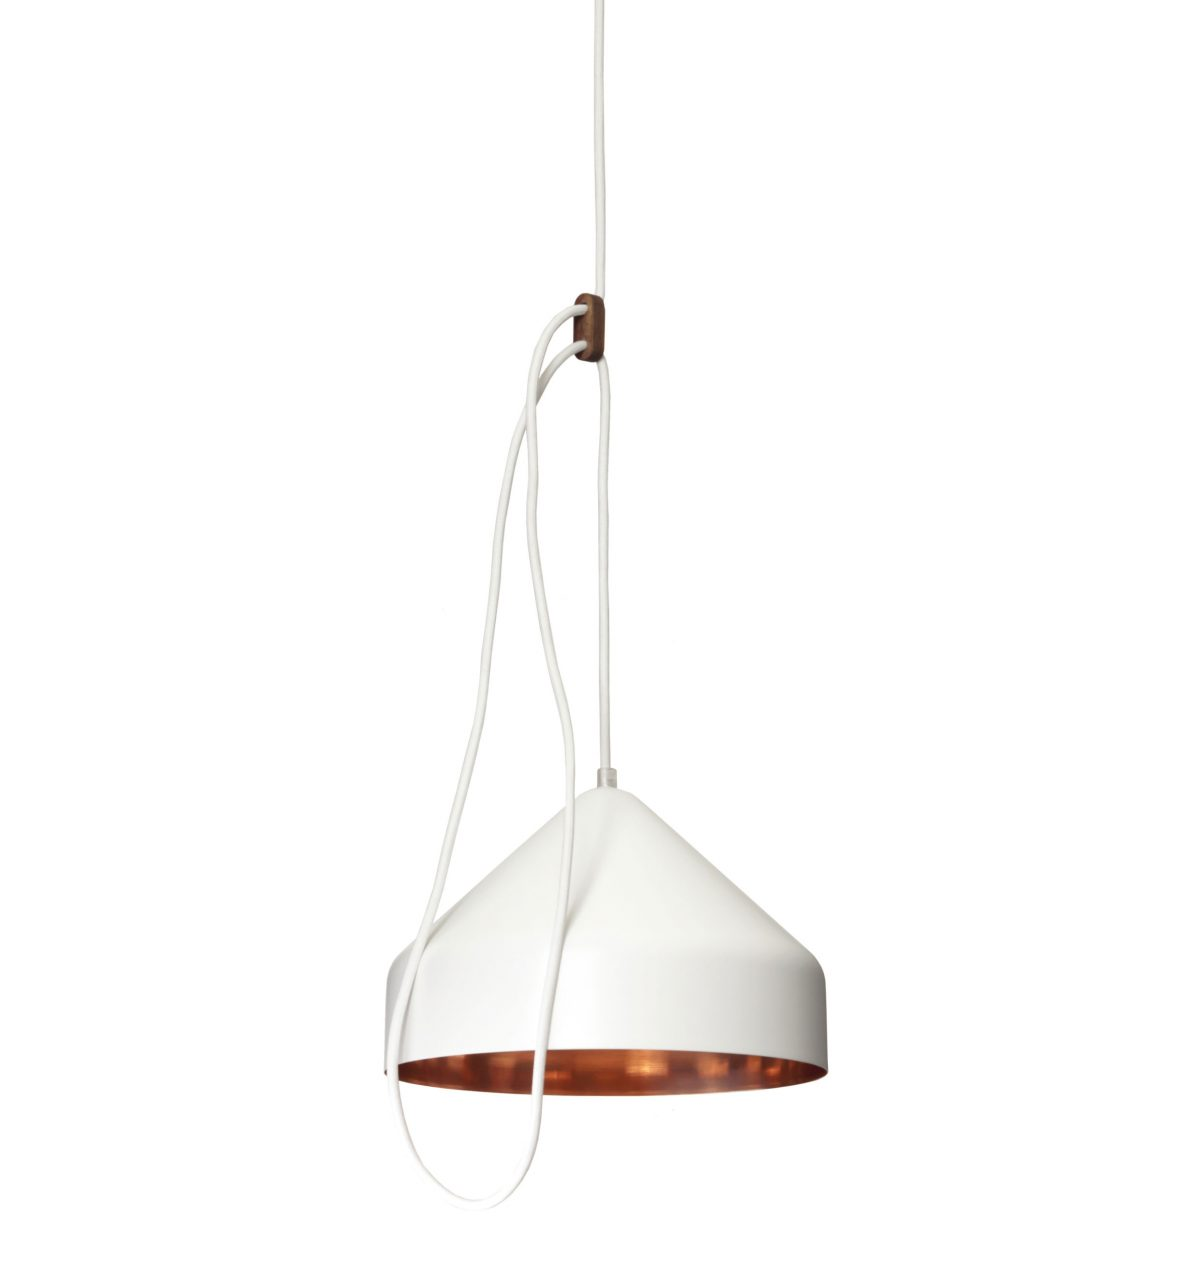 Lloop Hanglamp Koper Wit Vij5 Good Dutchdesign